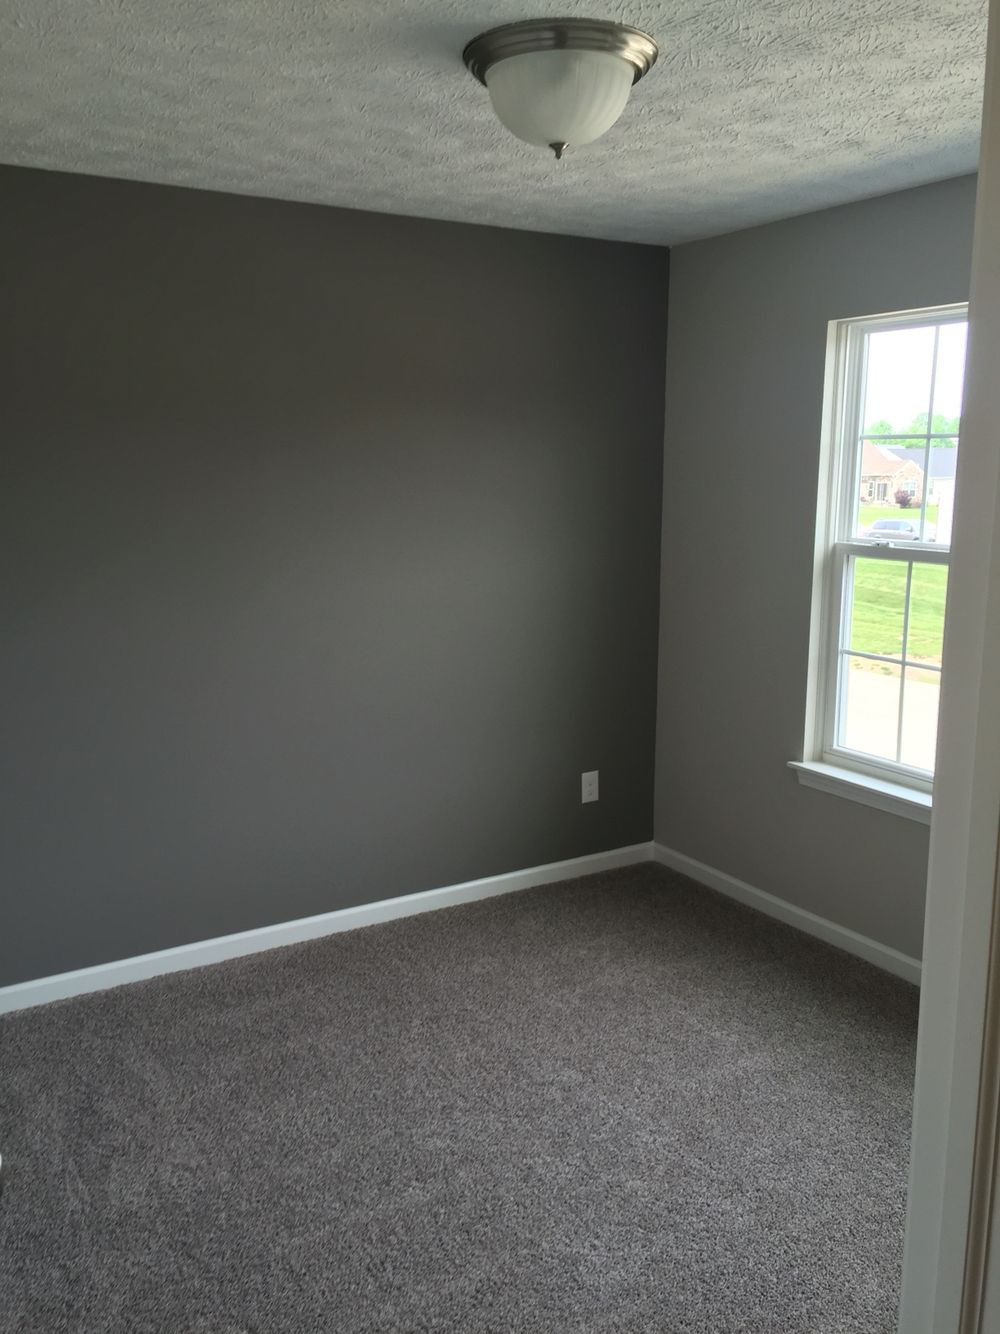 Our Carpet Is Mohawk Brand In Rainswept Gray The Dark Gray Accent